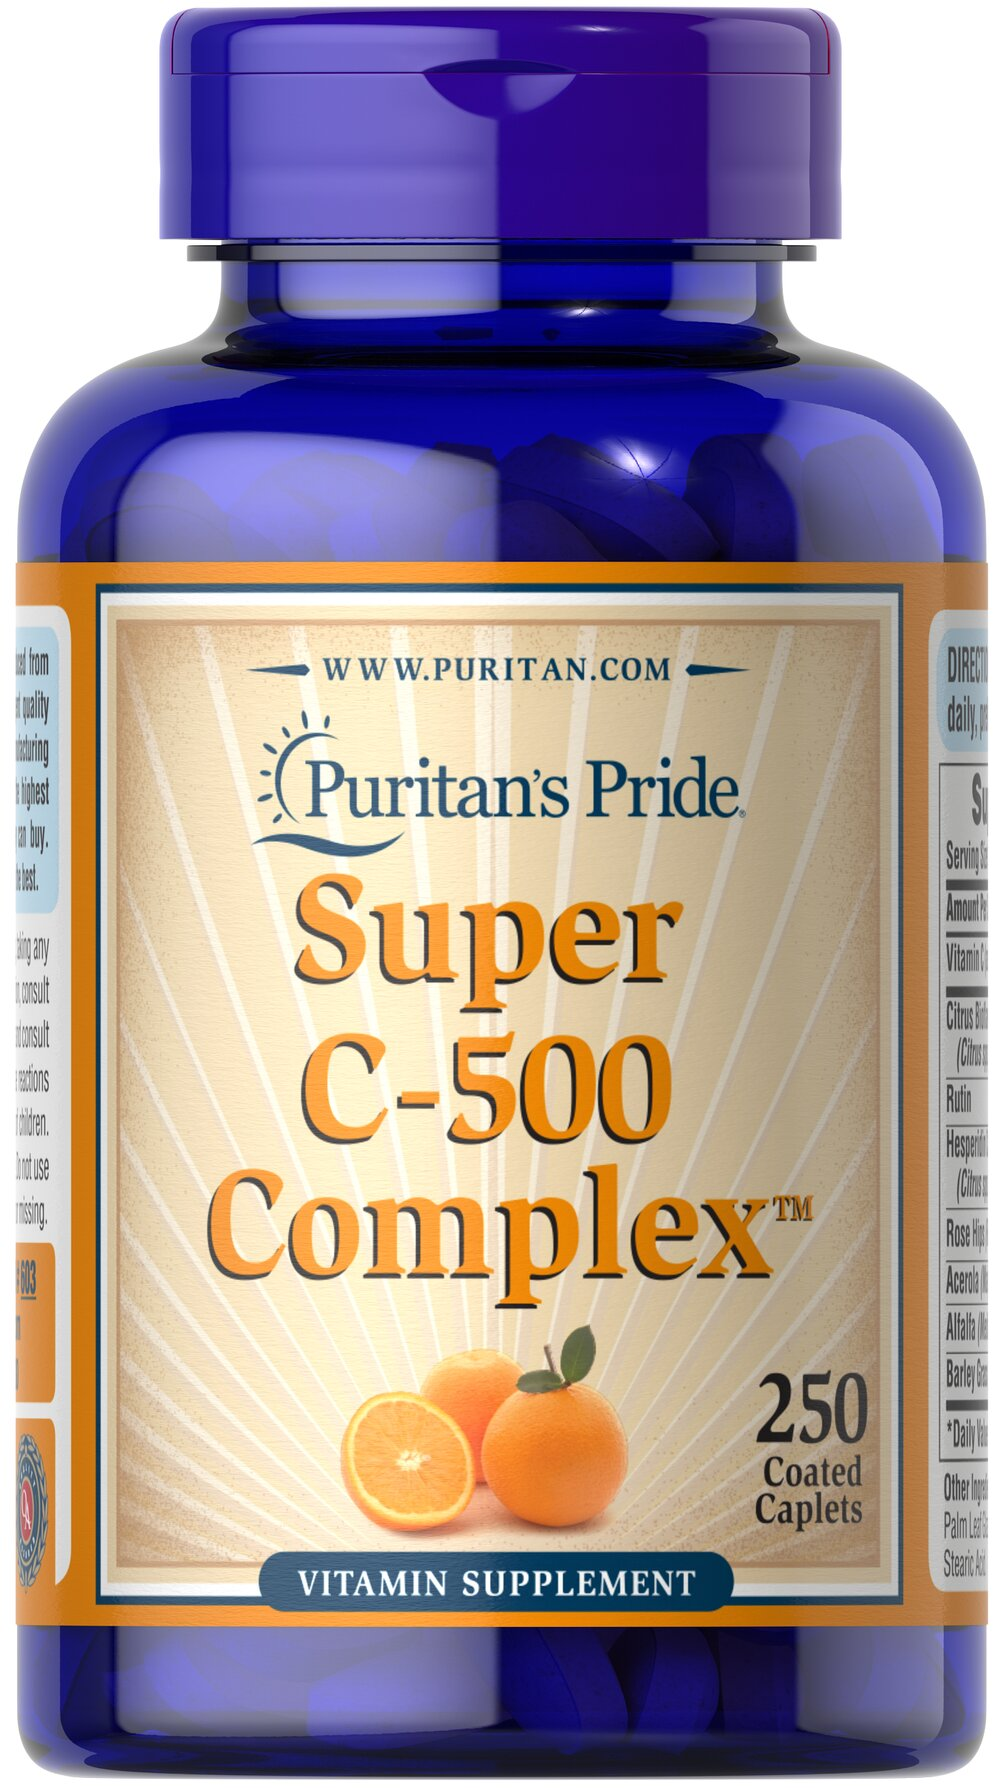 Vitamin C-500 Complex <p>Vitamin C  is essential to many functions in the body and is one of the leading vitamins for immune support.** Our C-complex includes potent Vitamin C as Ascorbic Acid. We also include Citrus Bioflavonoids, Rose Hips, Rutin, and Acerola.**</p><p>Offers superior antioxidant support.**</p><p>Supports healthy immune function and promotes well-being.**</p> 250 Coated Caplets 500 mg $24.99